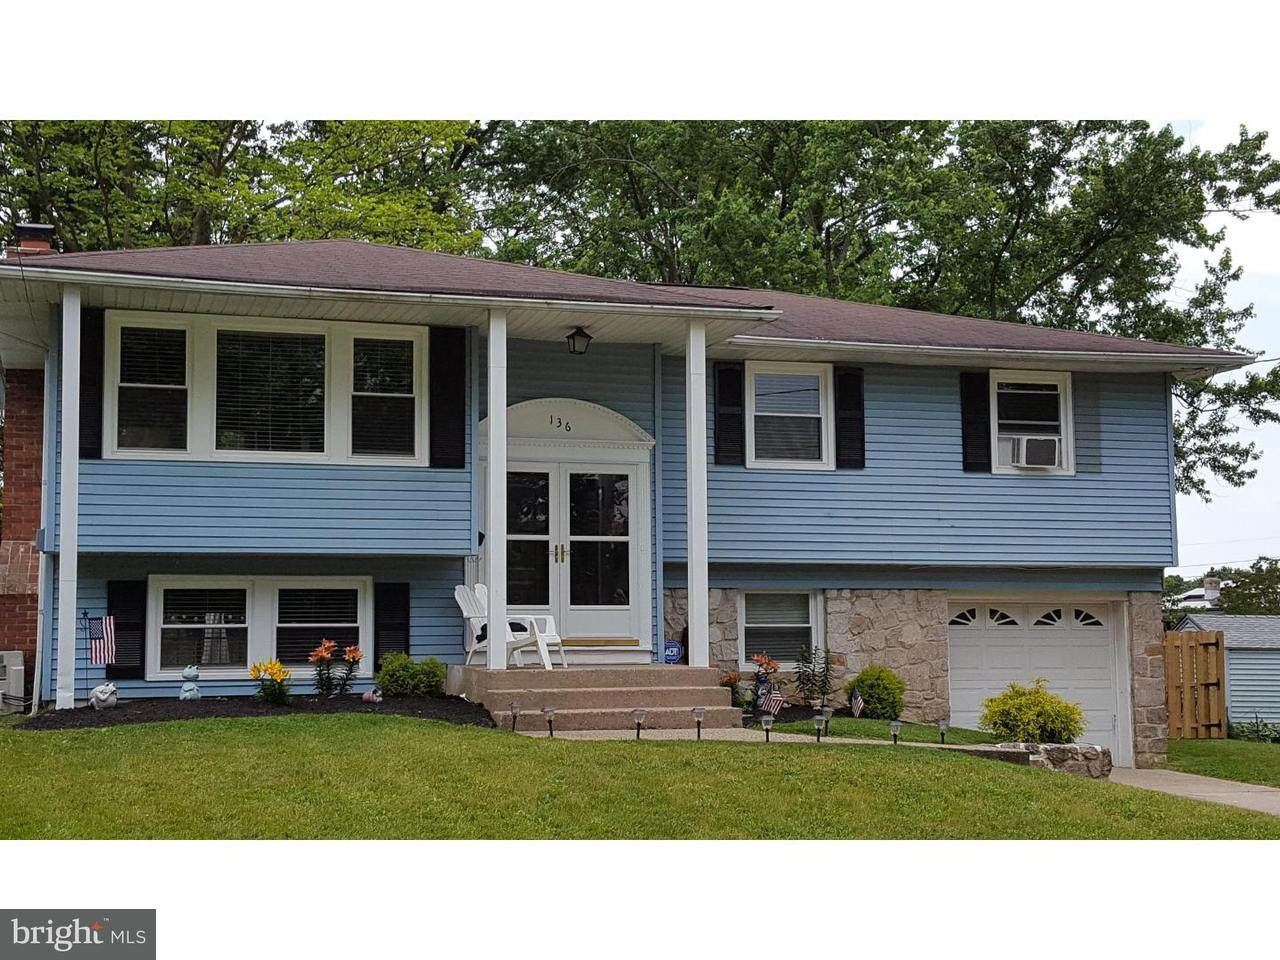 Single Family Home for Sale at 136 CENTRAL Court Woodbury Heights, New Jersey 08097 United States